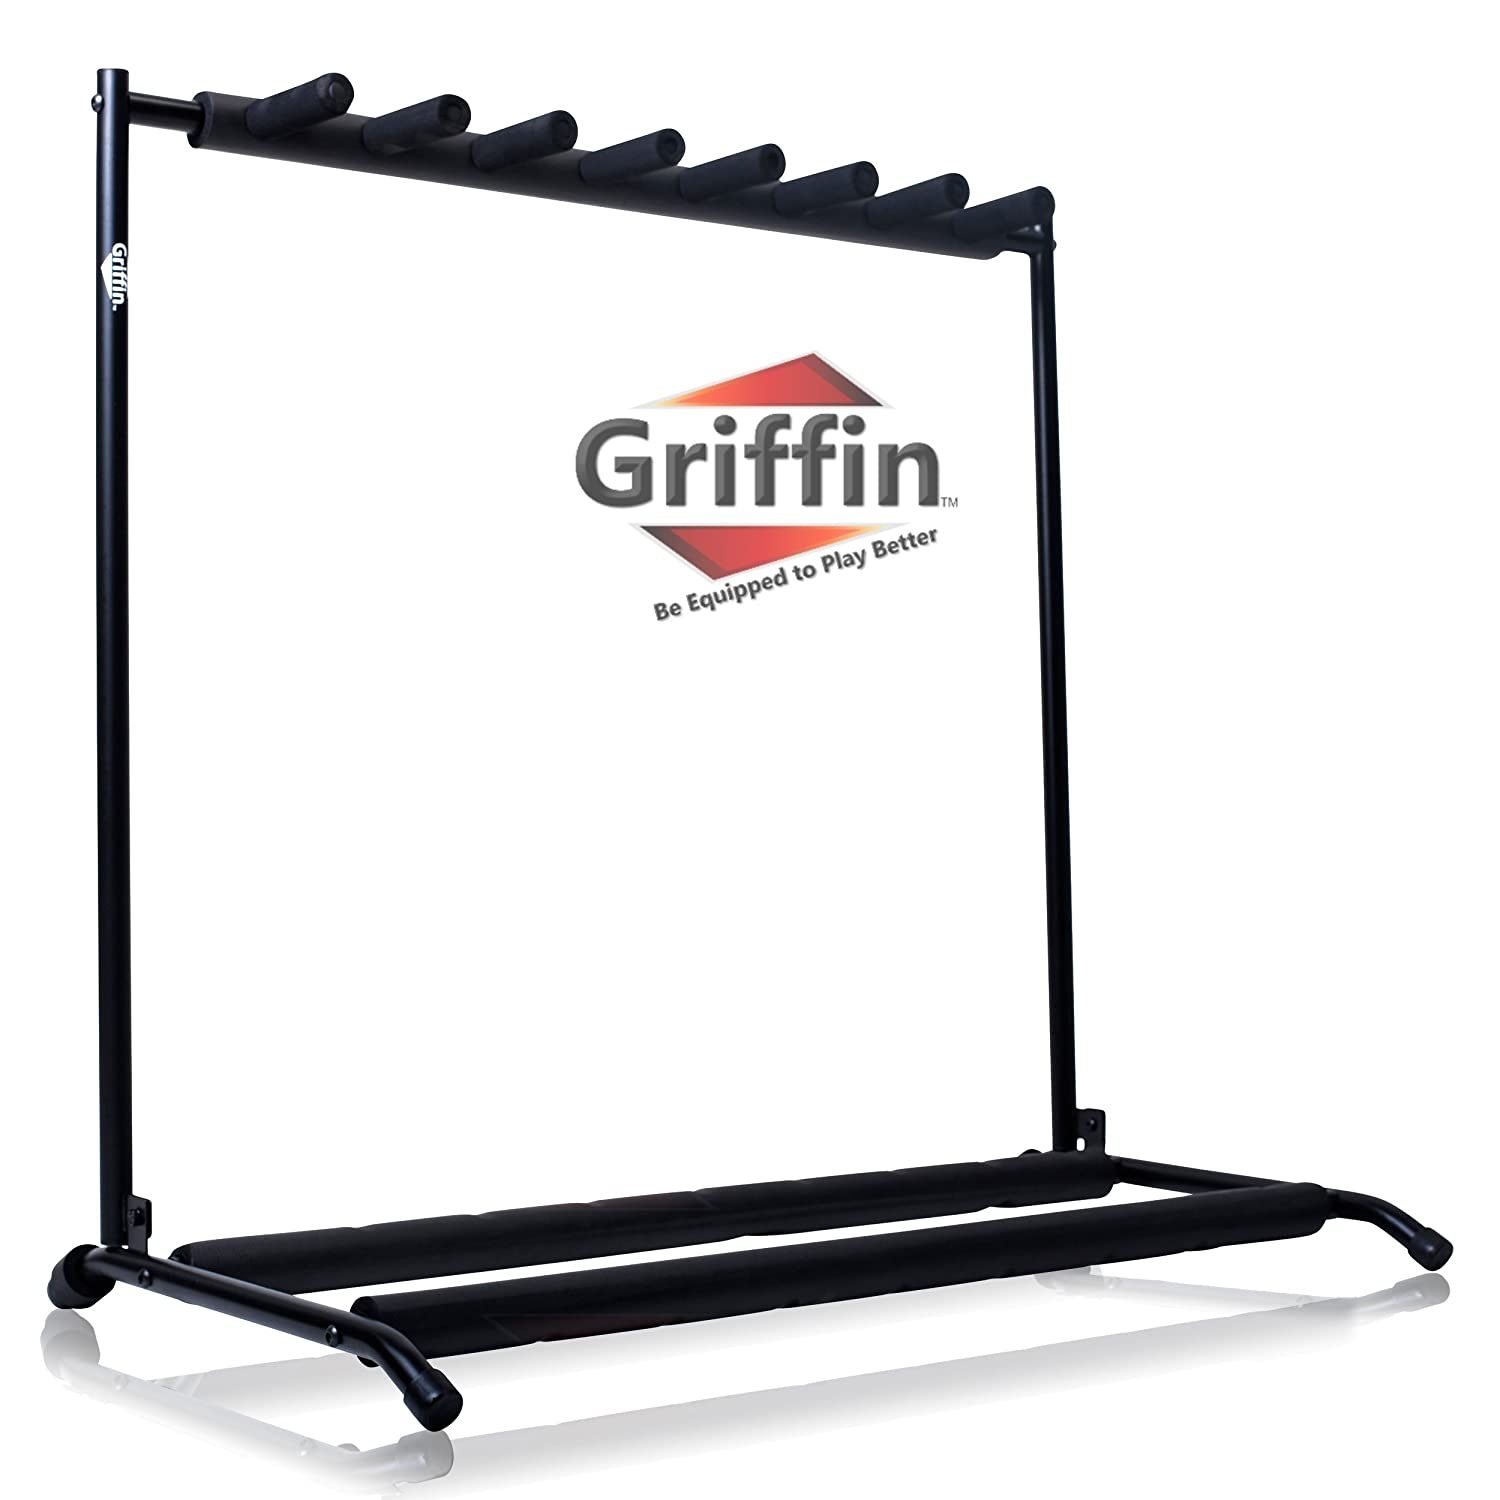 Seven Guitar Rack Stand by Griffin | Holder for 7 Guitars & Folds Up | For Electric, Acoustic & Classical Guitar, Bass & Ukulele | Ideal For Music Bands, Recording Studios, Schools, Stage Performers LG-AP34087